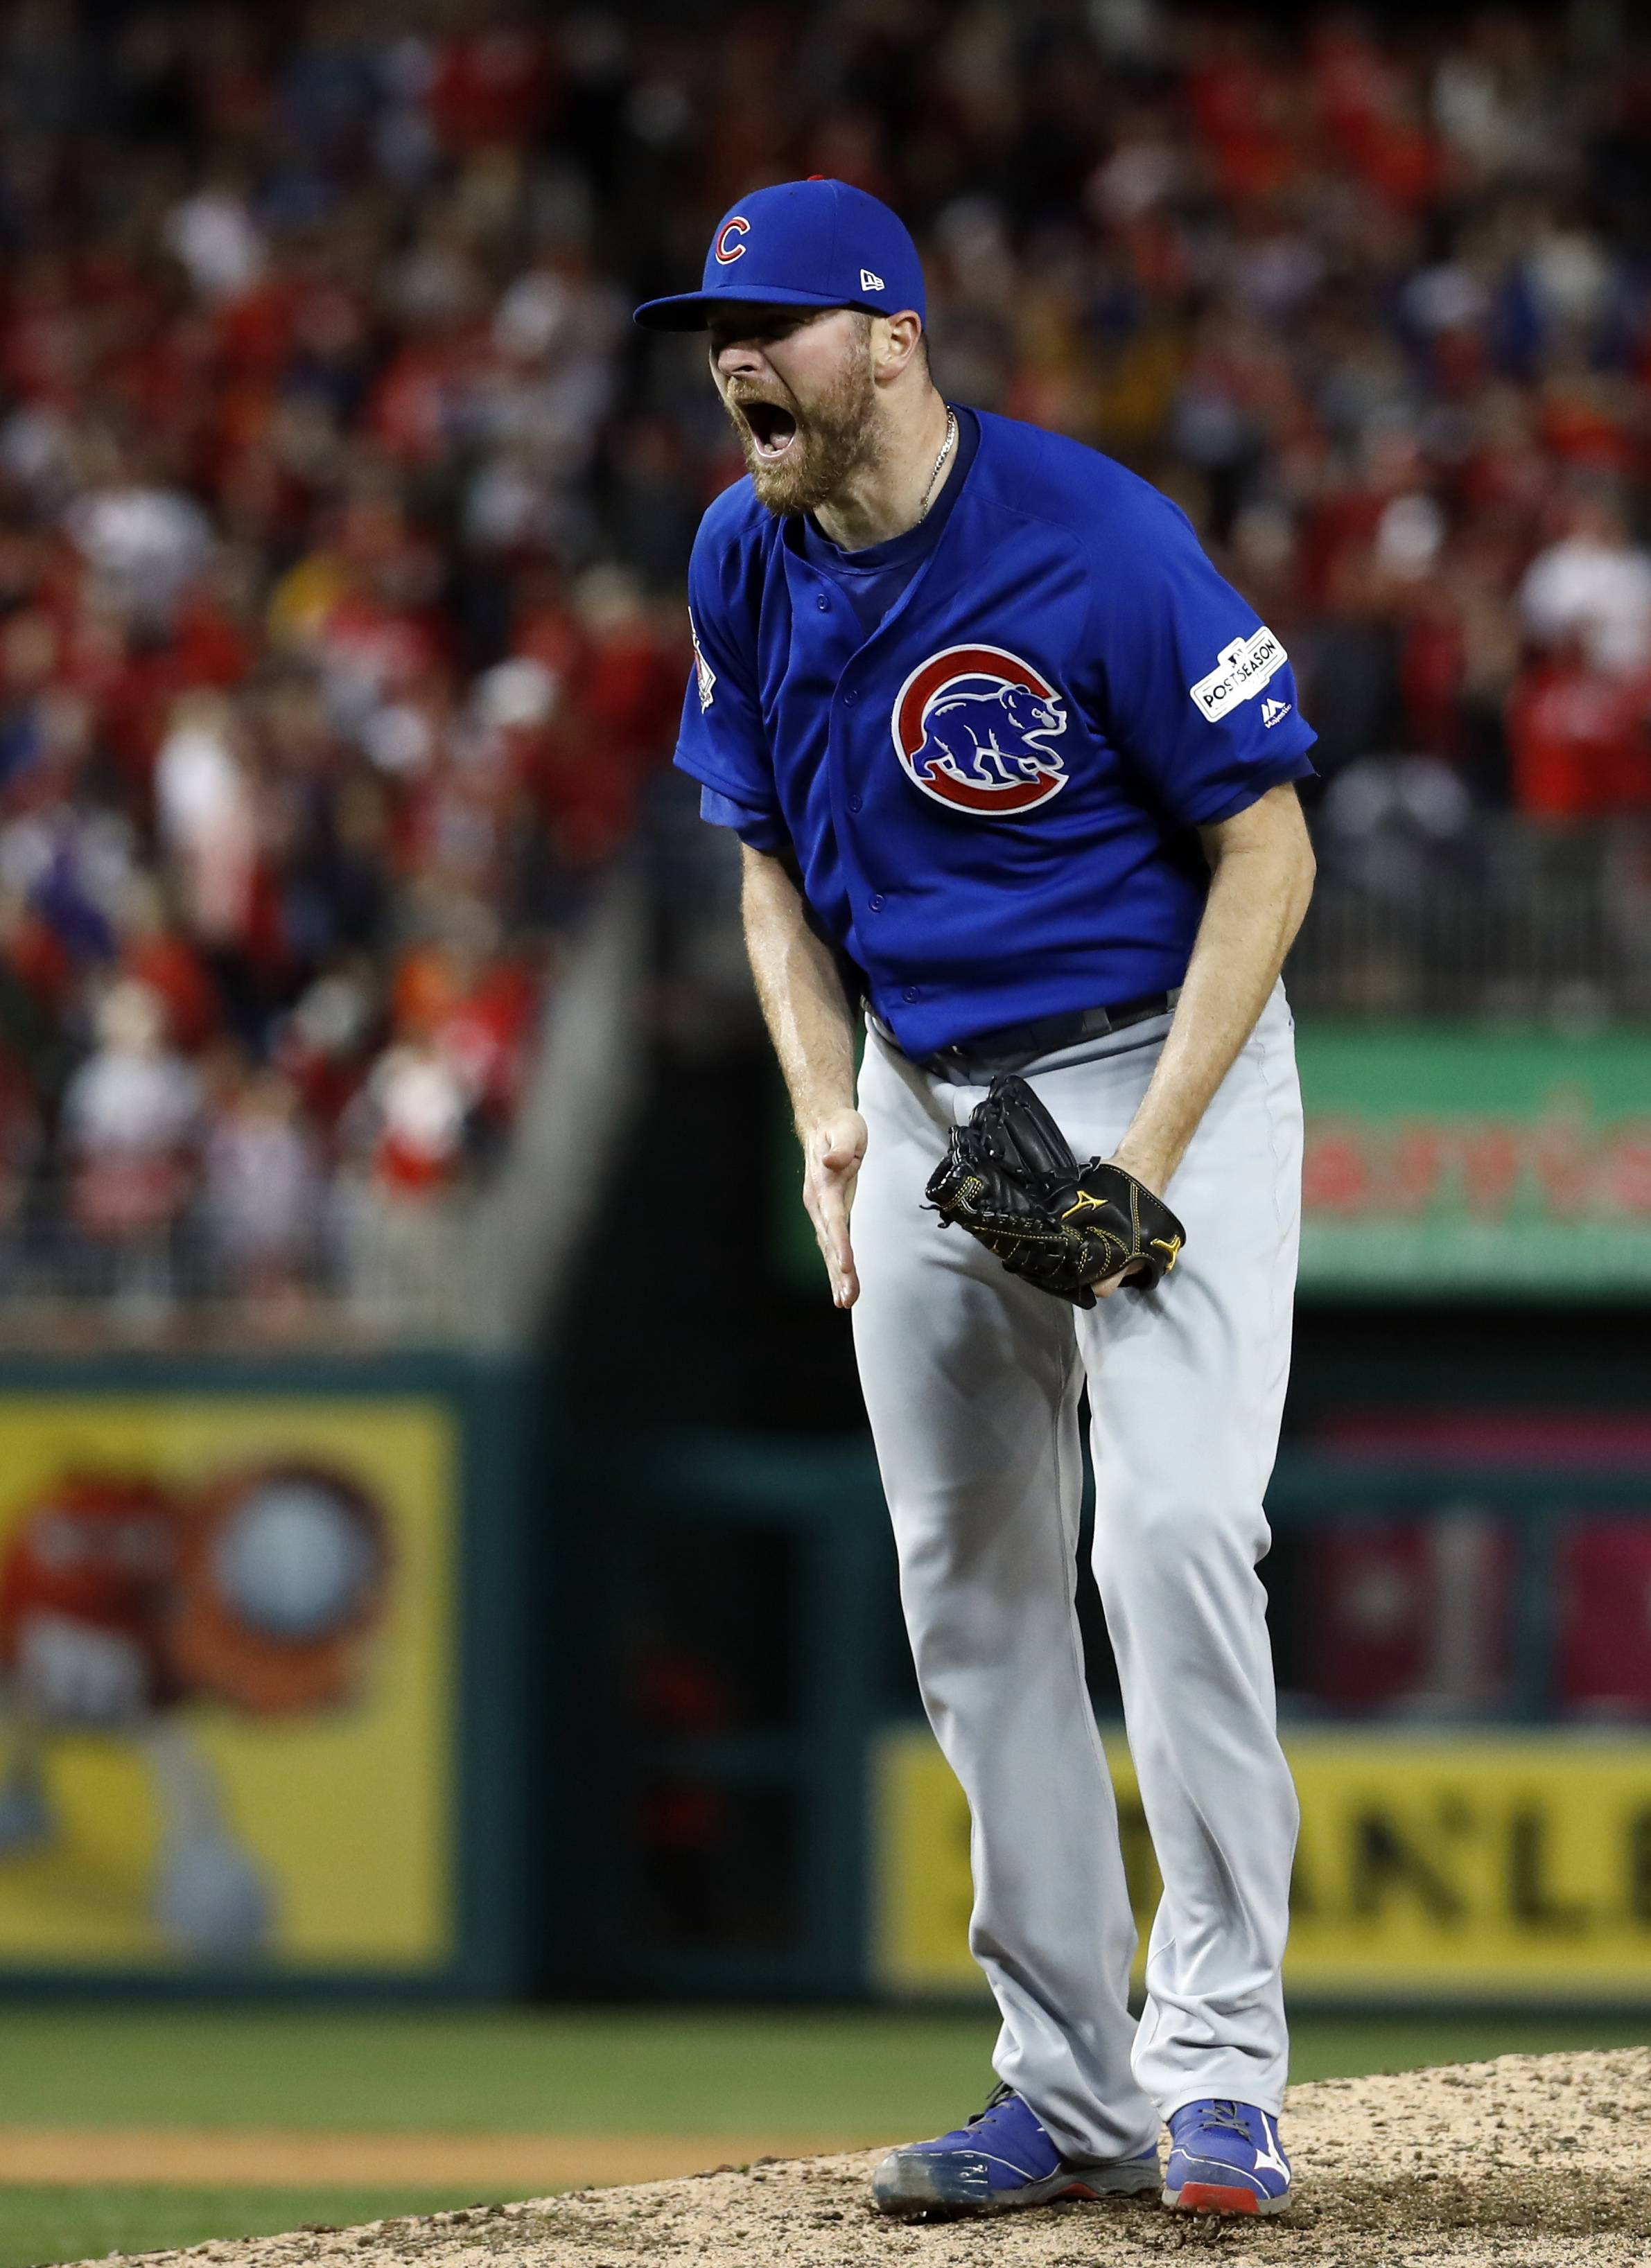 Chicago Cubs relief pitcher Wade Davis reacts after recording the final out against the Washington Nationals in Game 5 of the National League division series, in Washington.